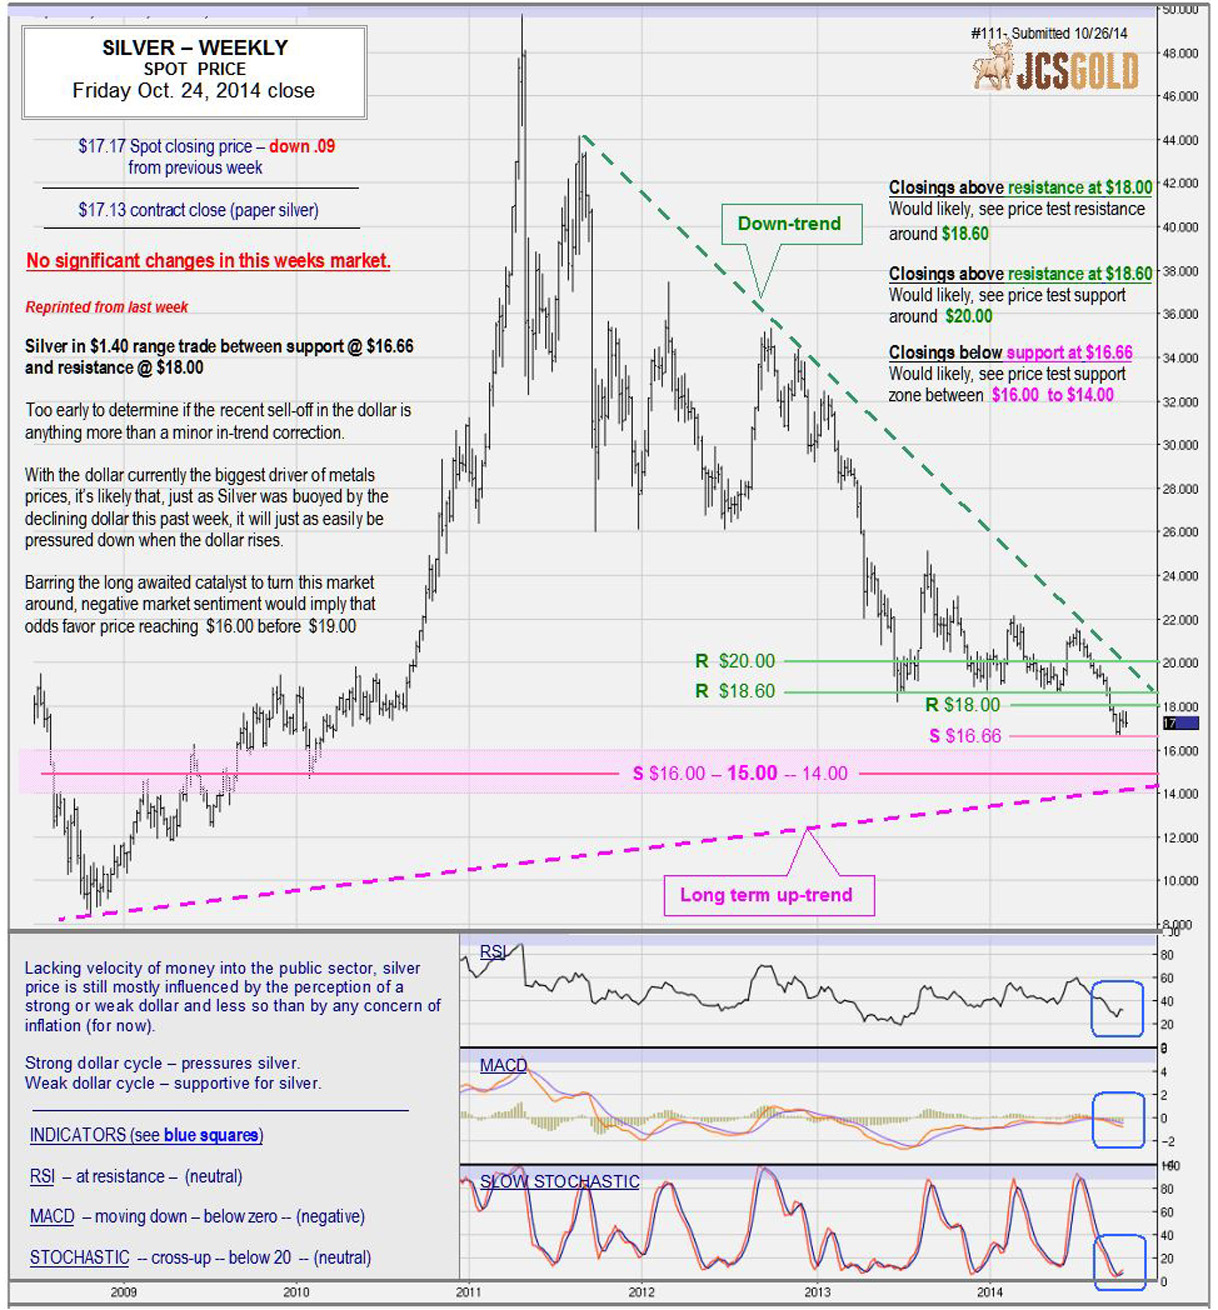 Oct. 24, 2014 chart & commentary